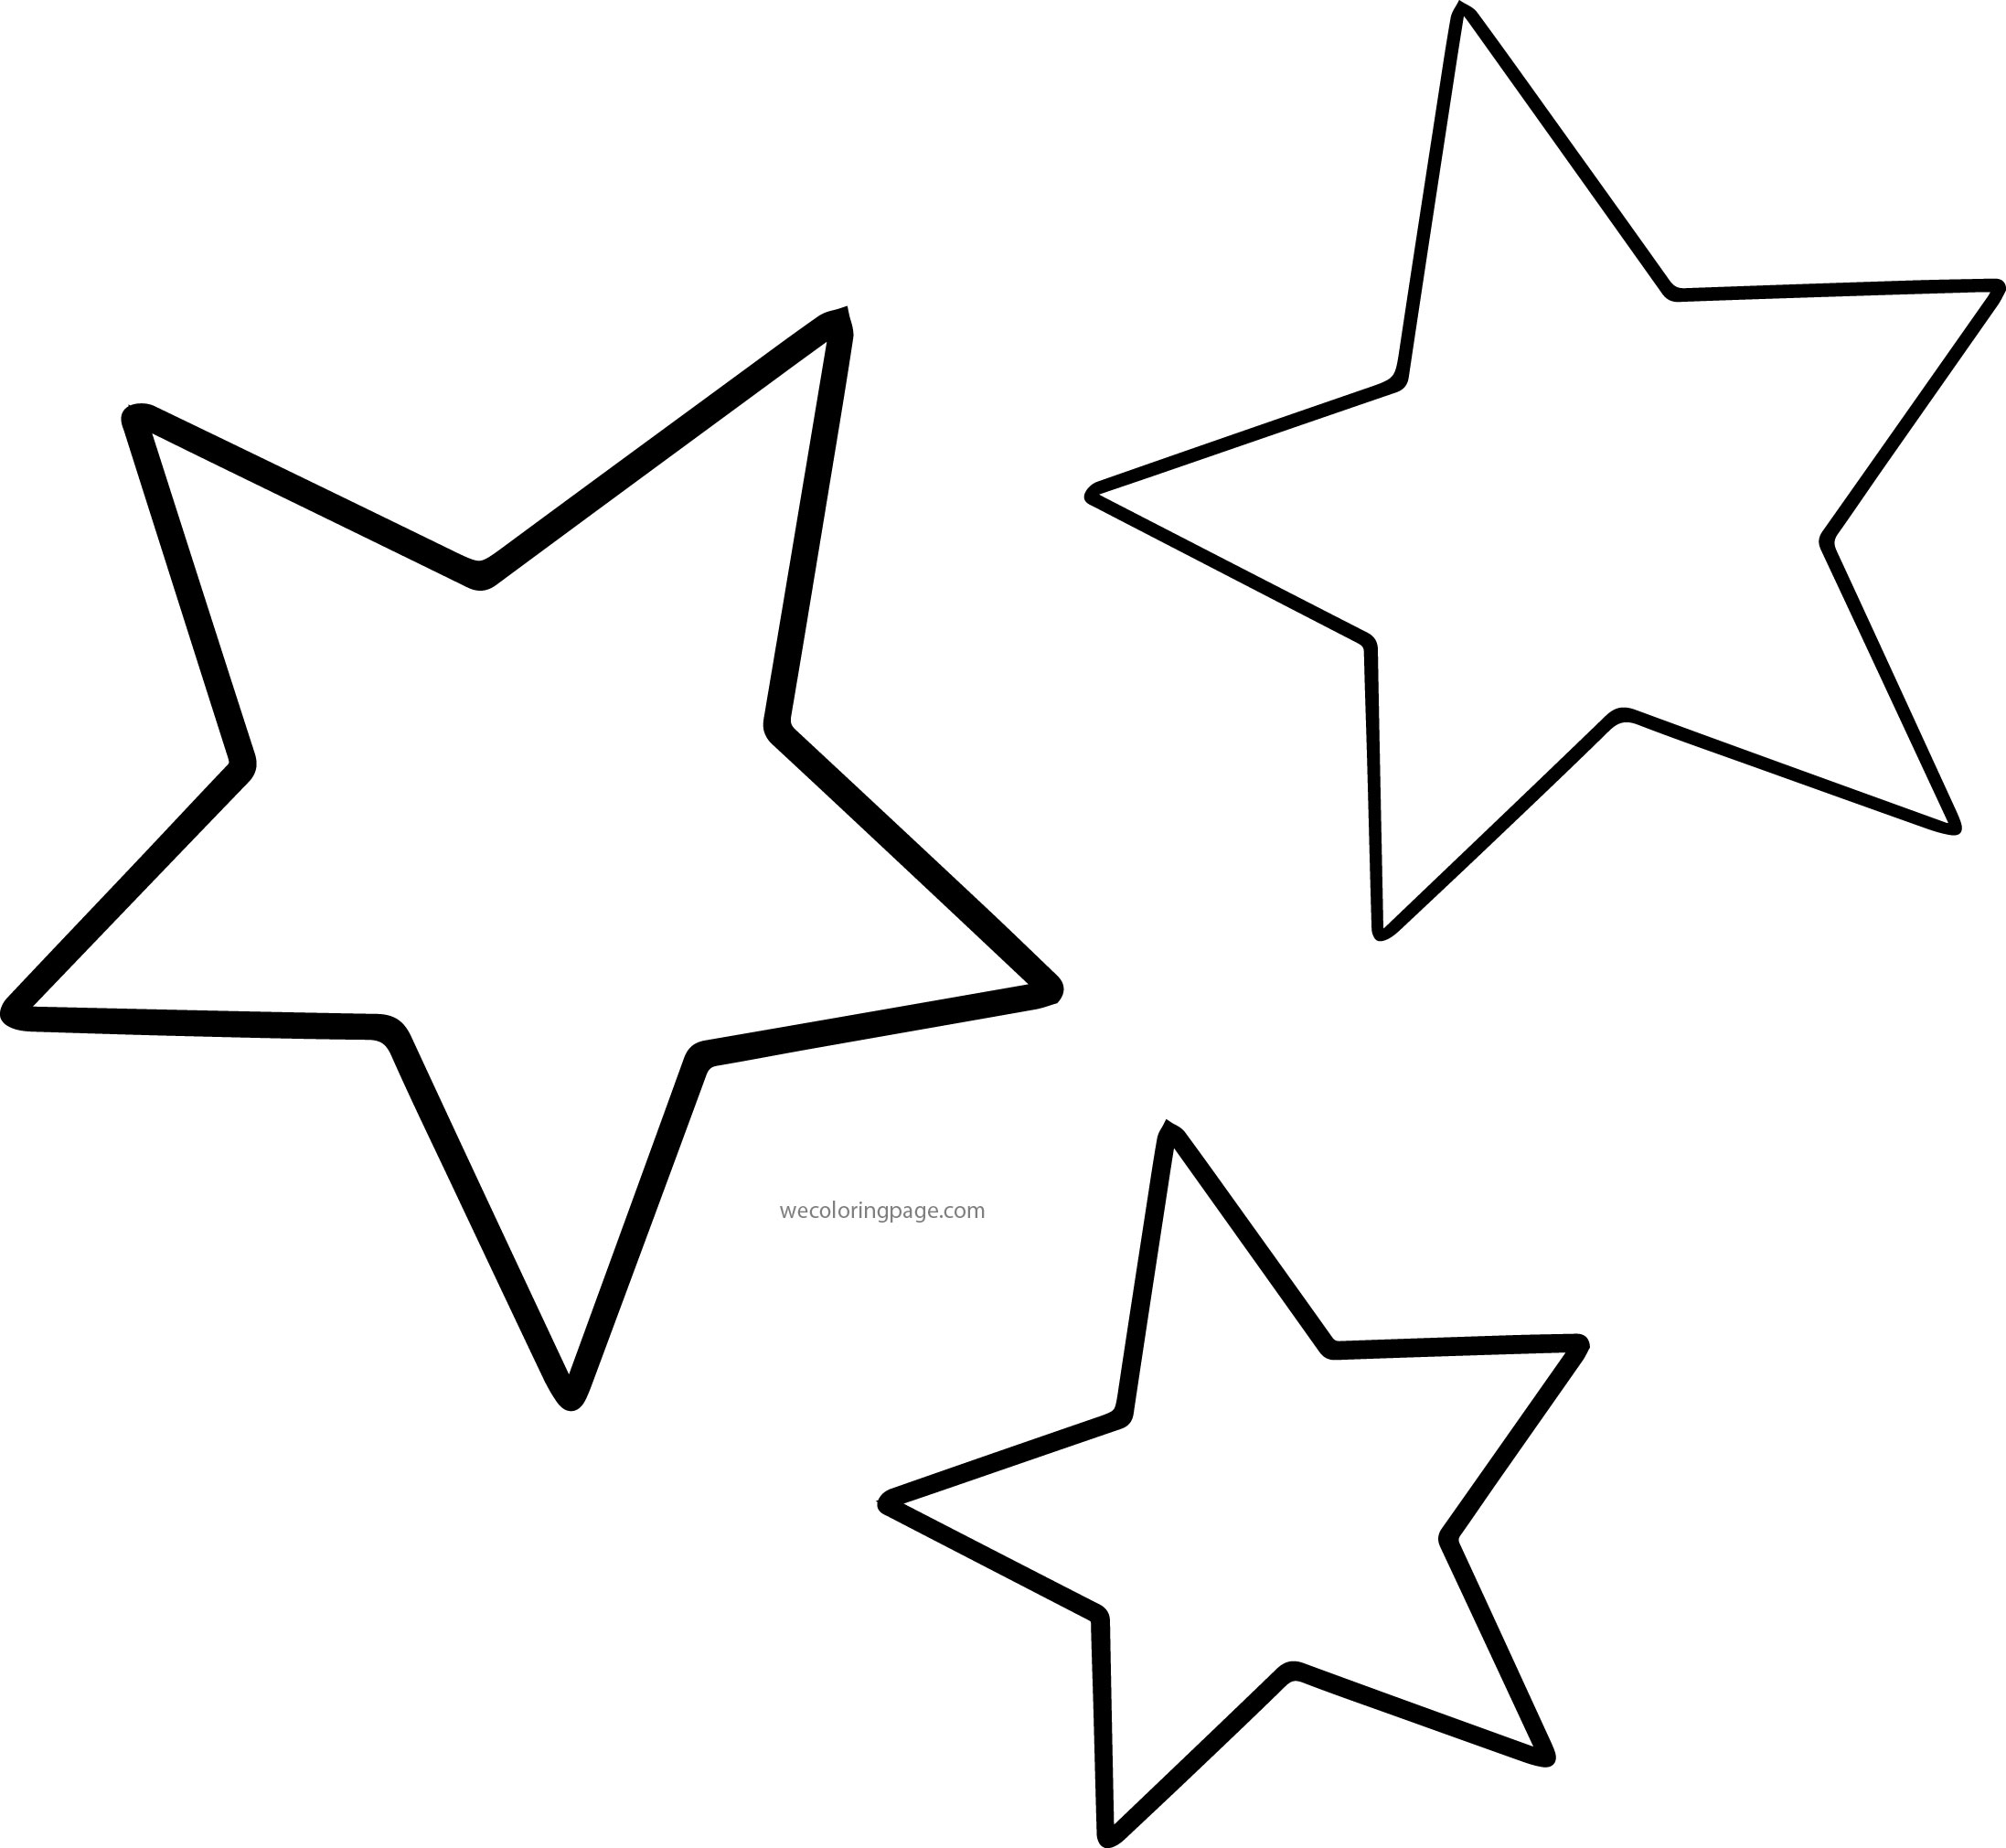 star coloring pages for toddlers - photo#22